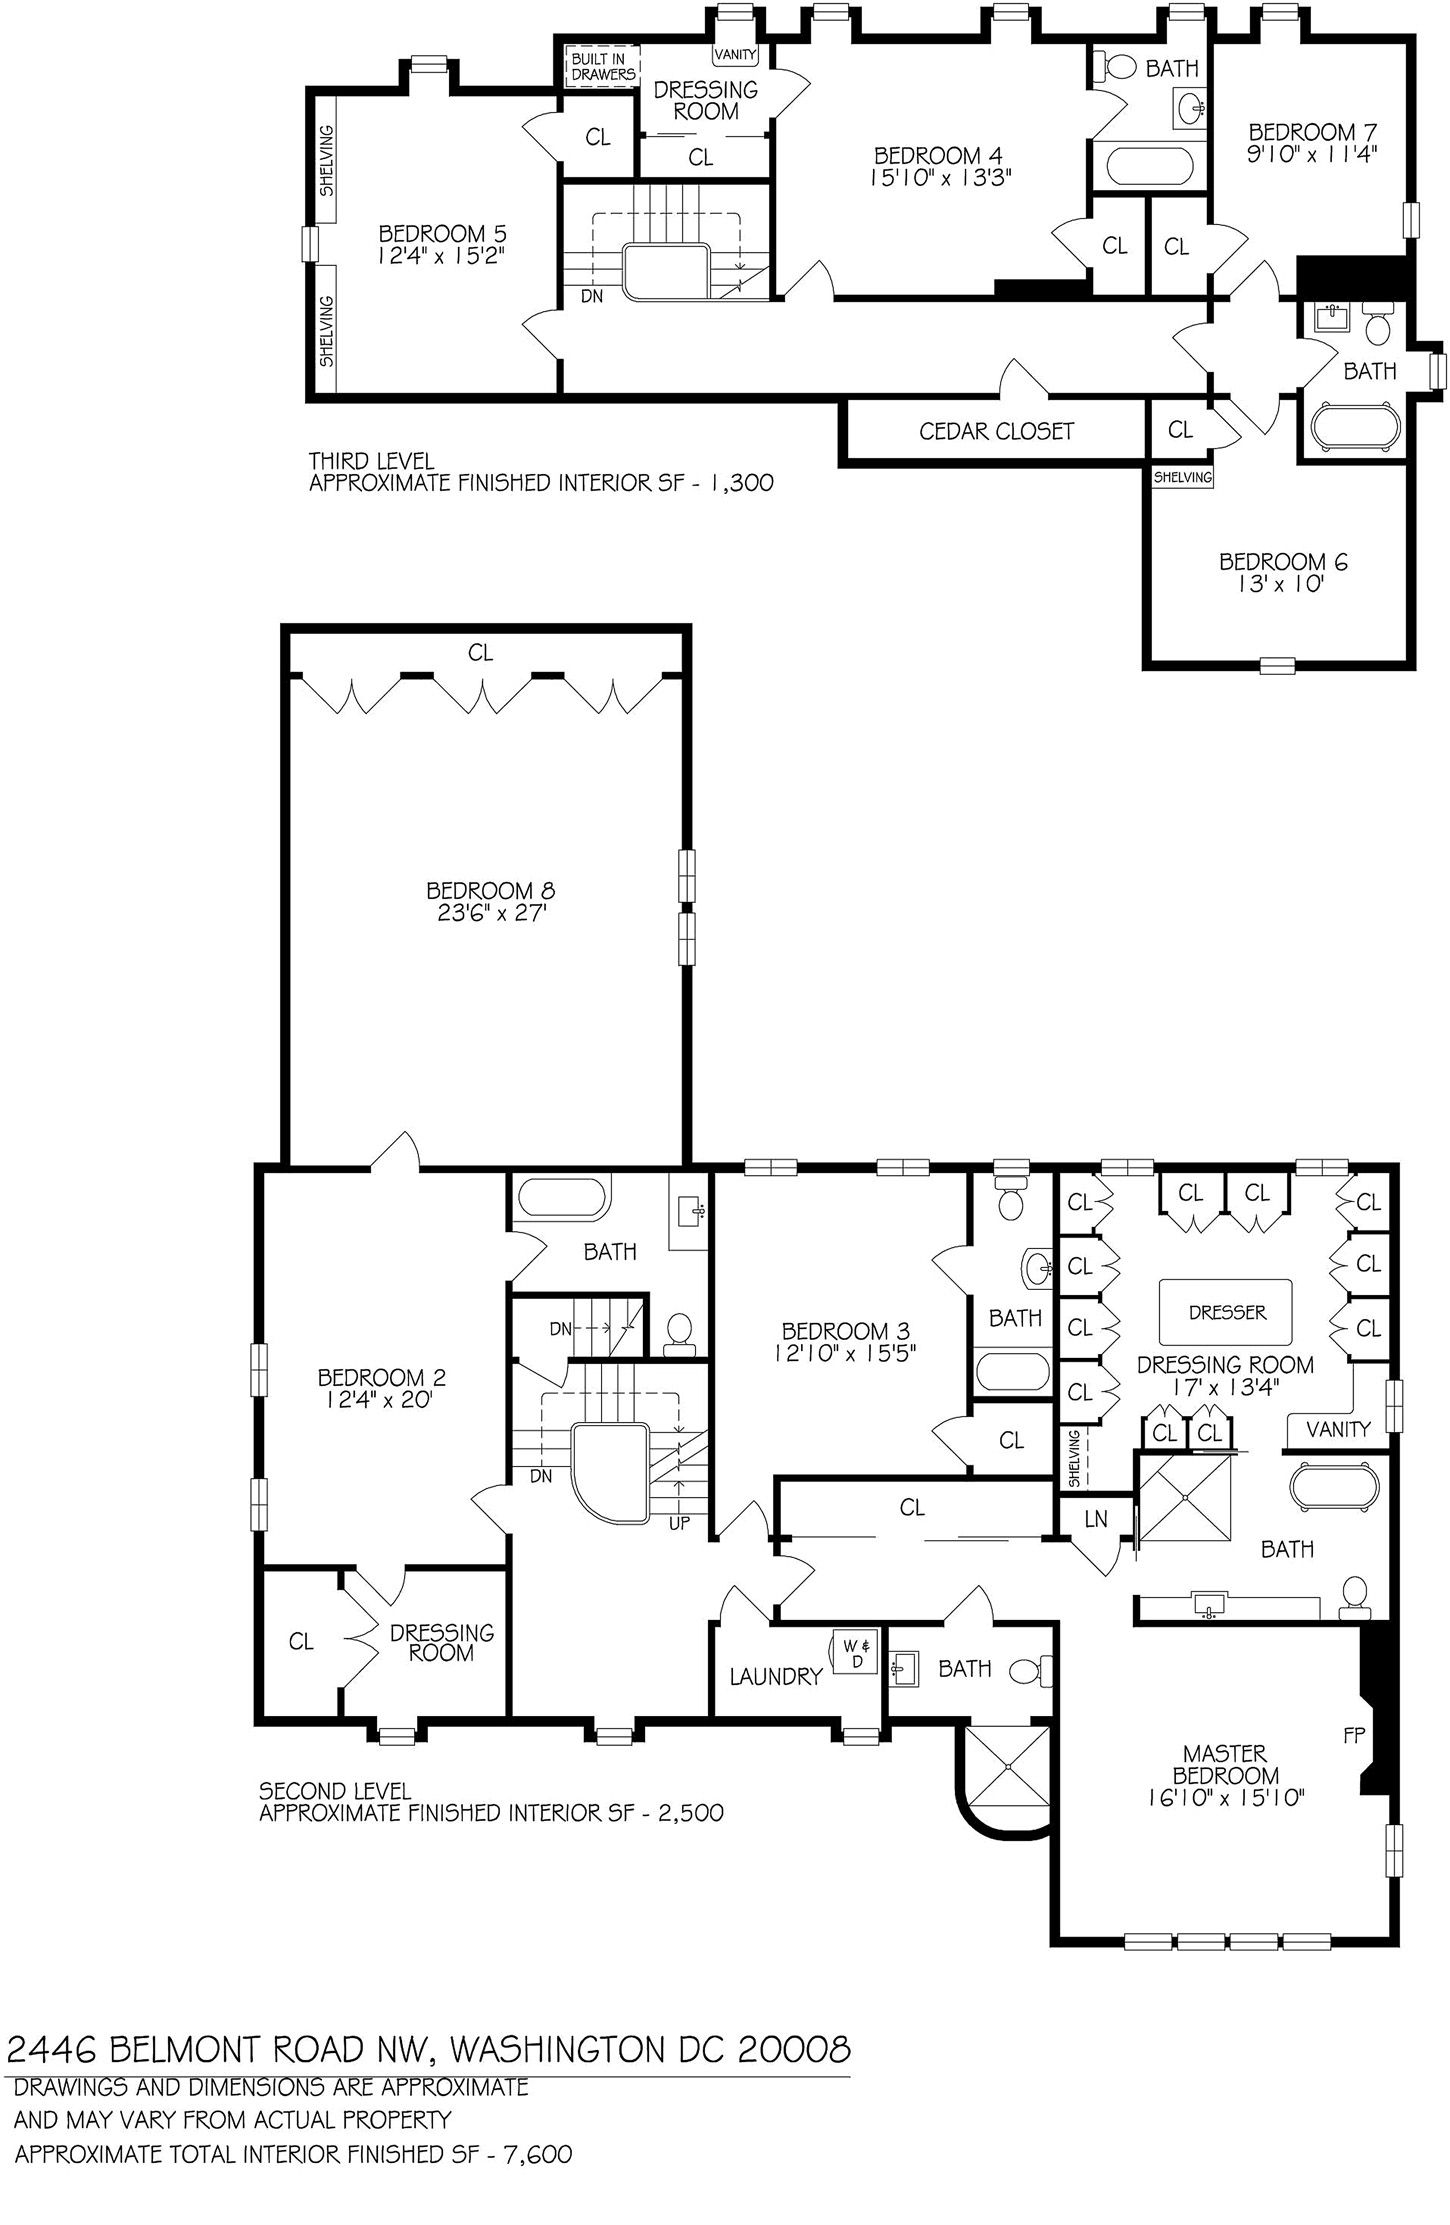 Here S The House Obama Will Live In After He Moves Out Of The White House White House Washington Dc Obama House Floor Plans